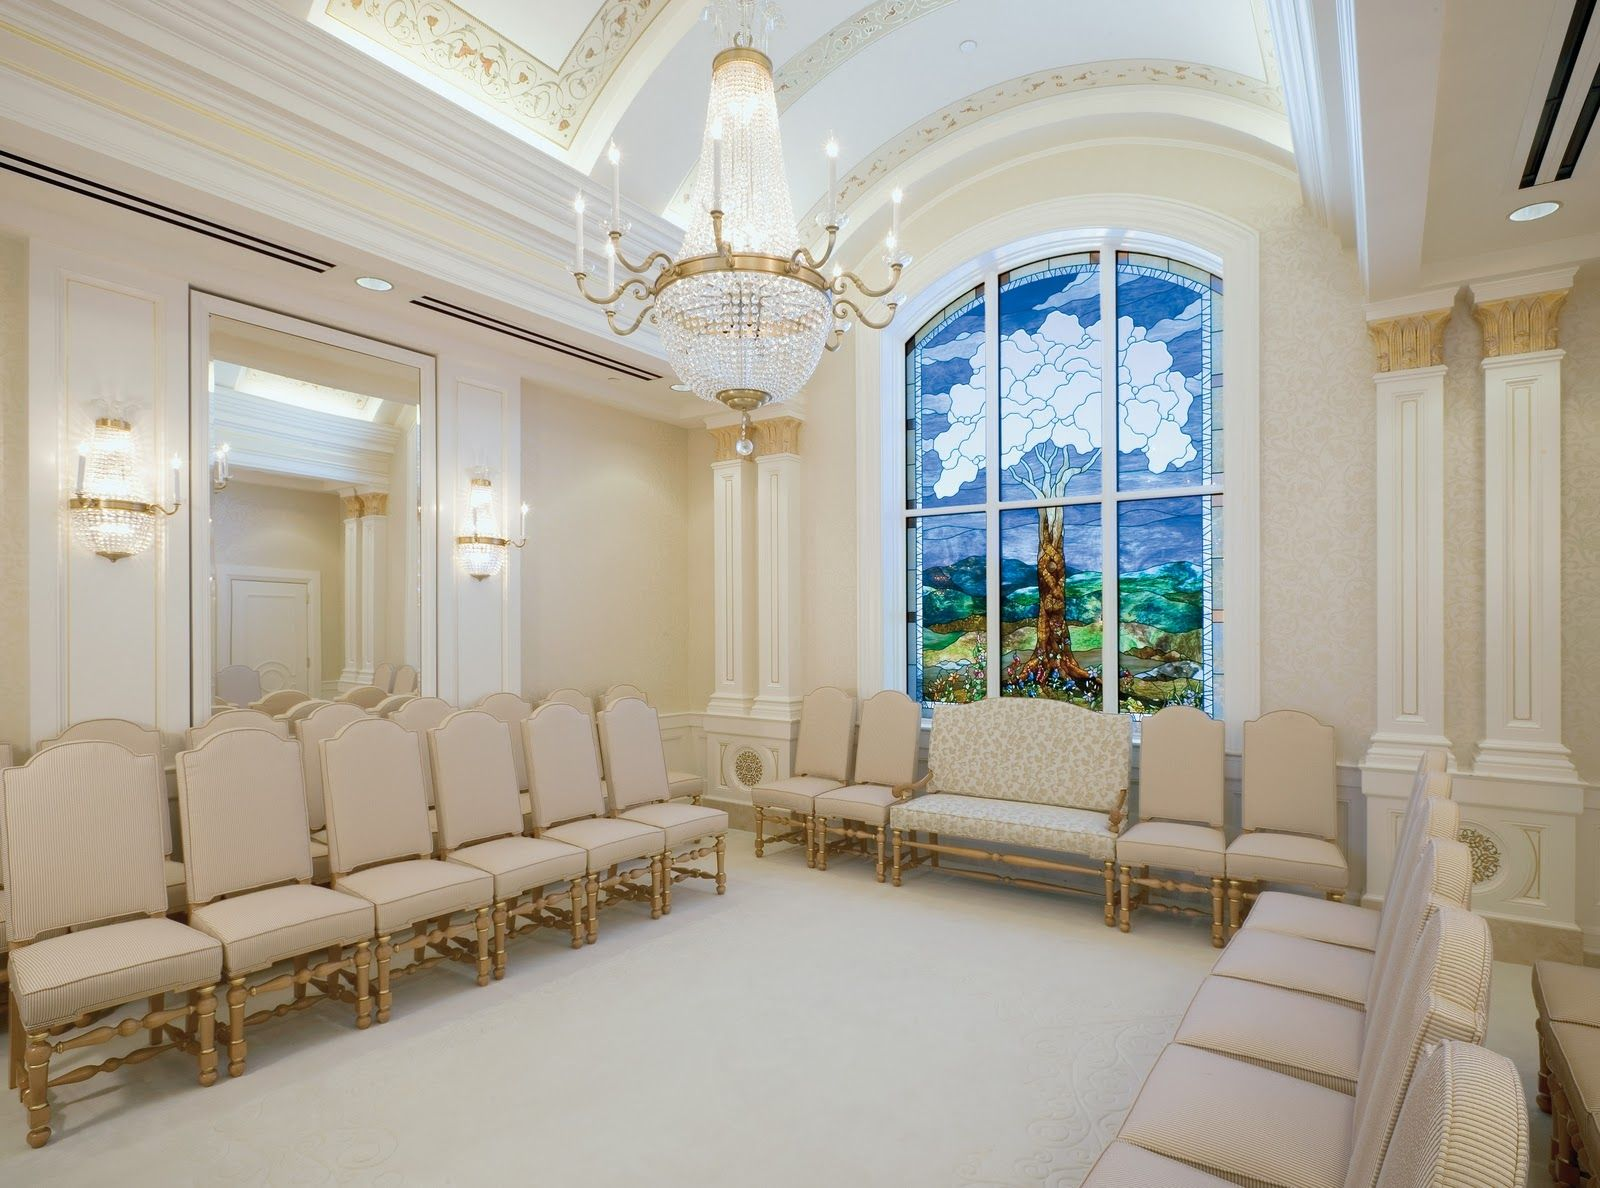 Lds Manhattan New York Temple Google Search Churches